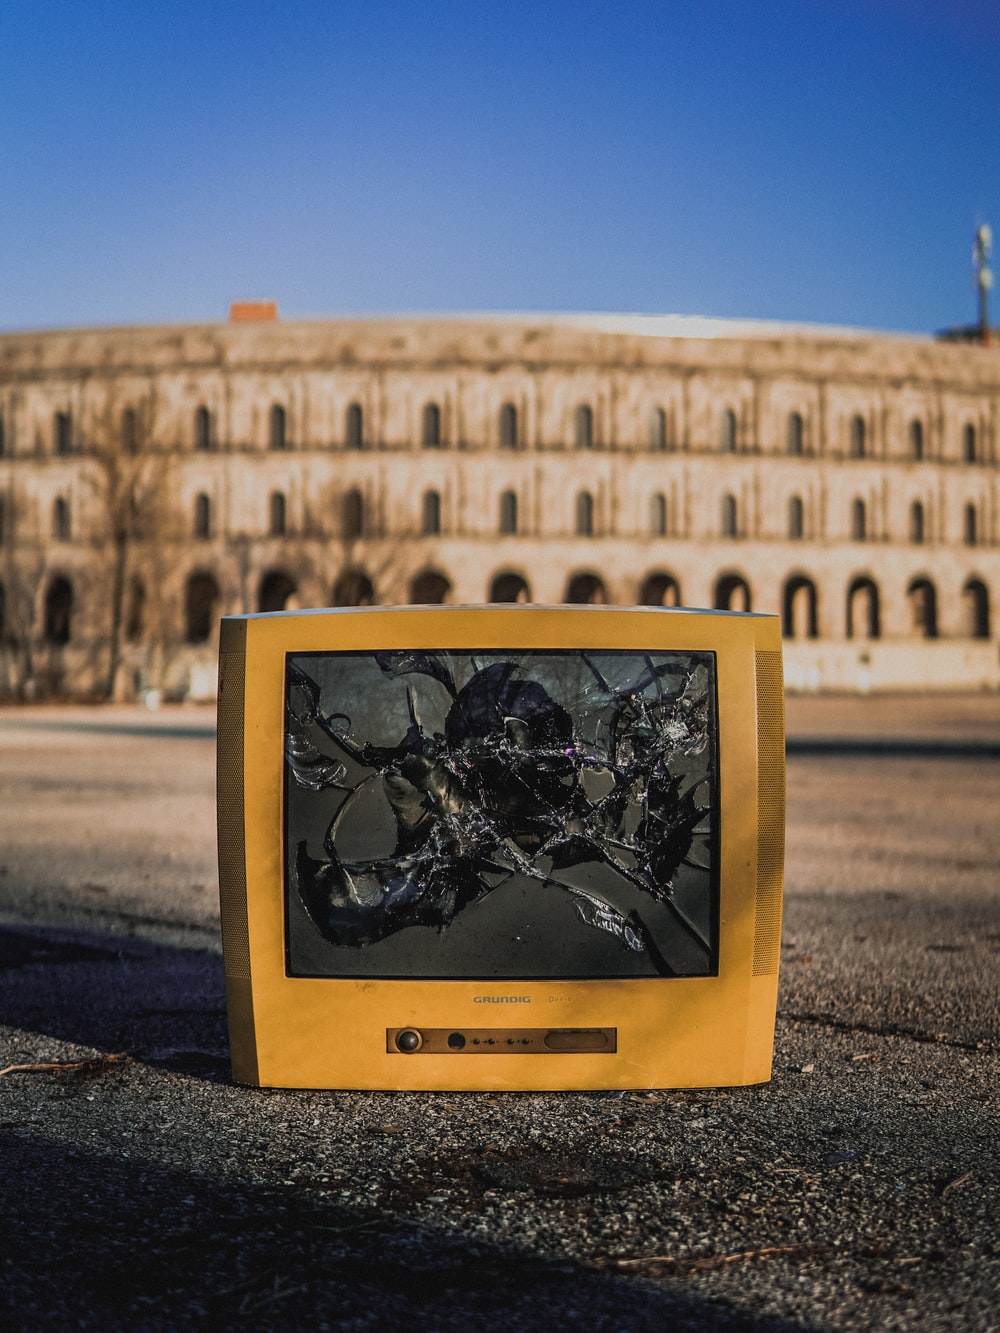 cracked beige monitor on the street